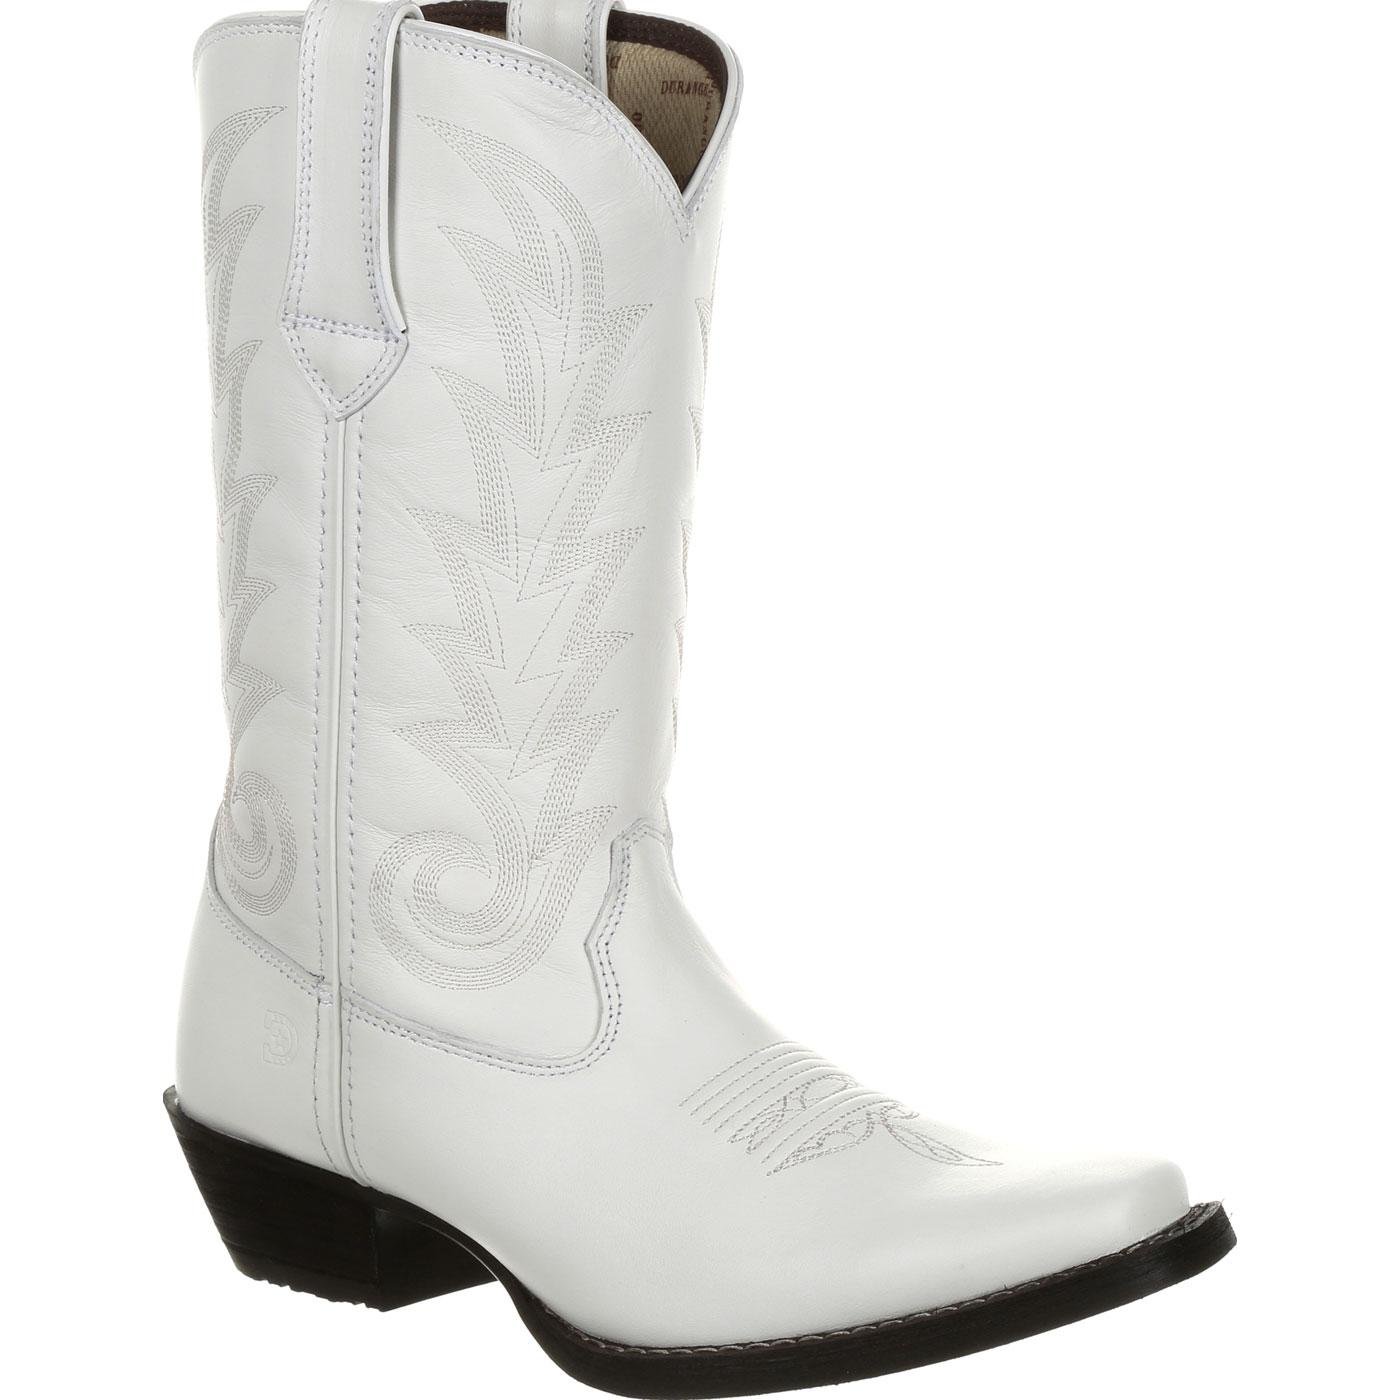 Creative Fashion Cowboy Boots Women | Bsrjc Boots